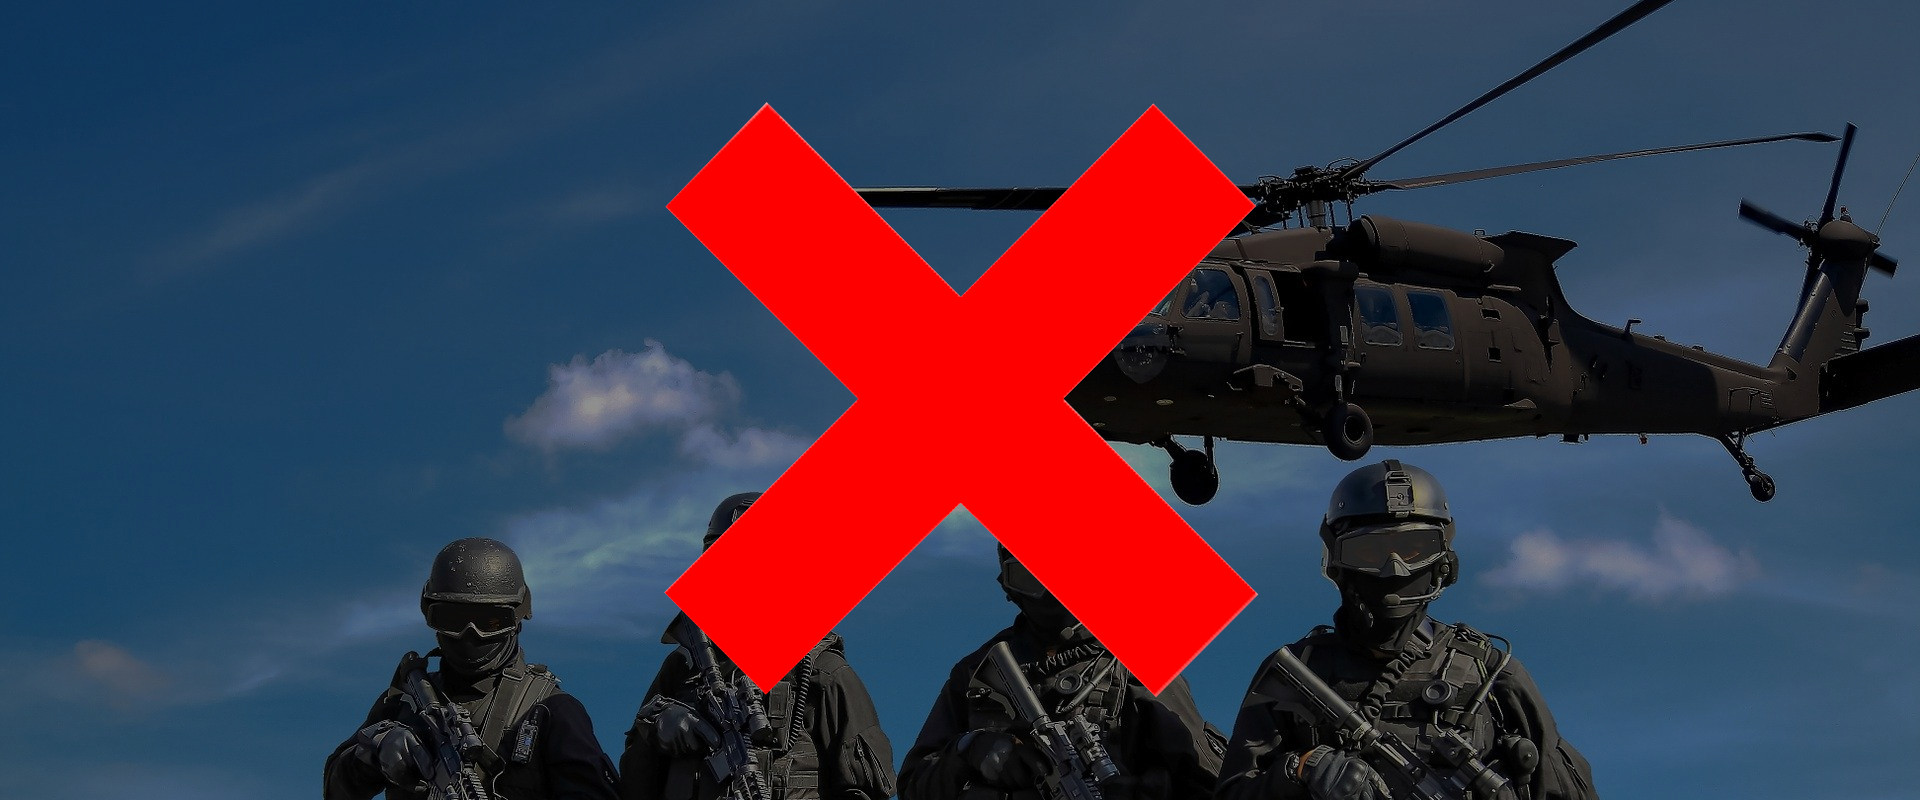 Four militarized police members and helicopter in the background, with red X overlaid to represent stopping biased targeting and surveillance